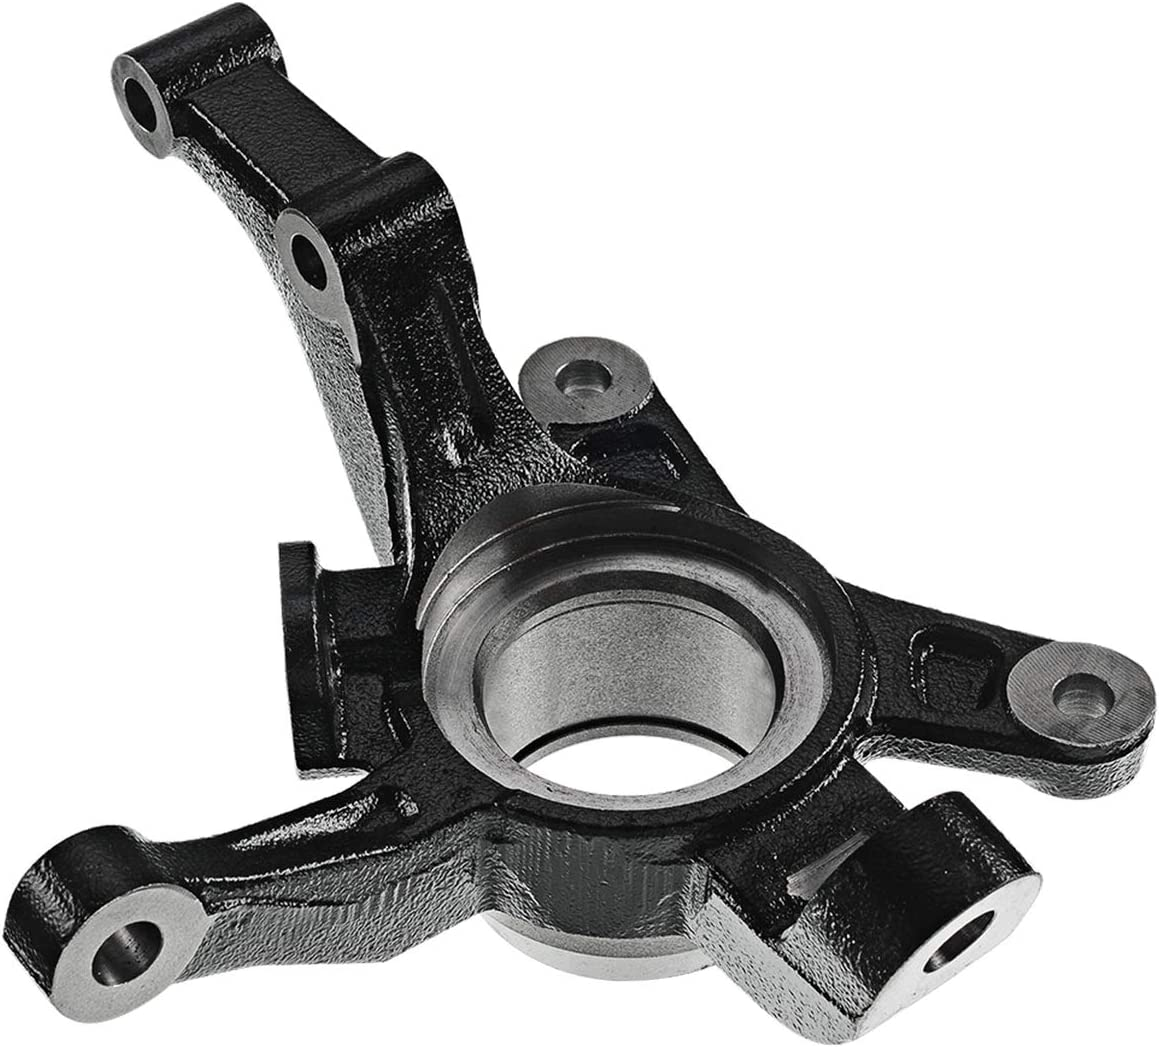 Front Left Driver Side Steering Knuckle Compatible with Chevrolet Aveo 2004-2011 Aveo5 2007-2011 Pontiac G3 2009-2010